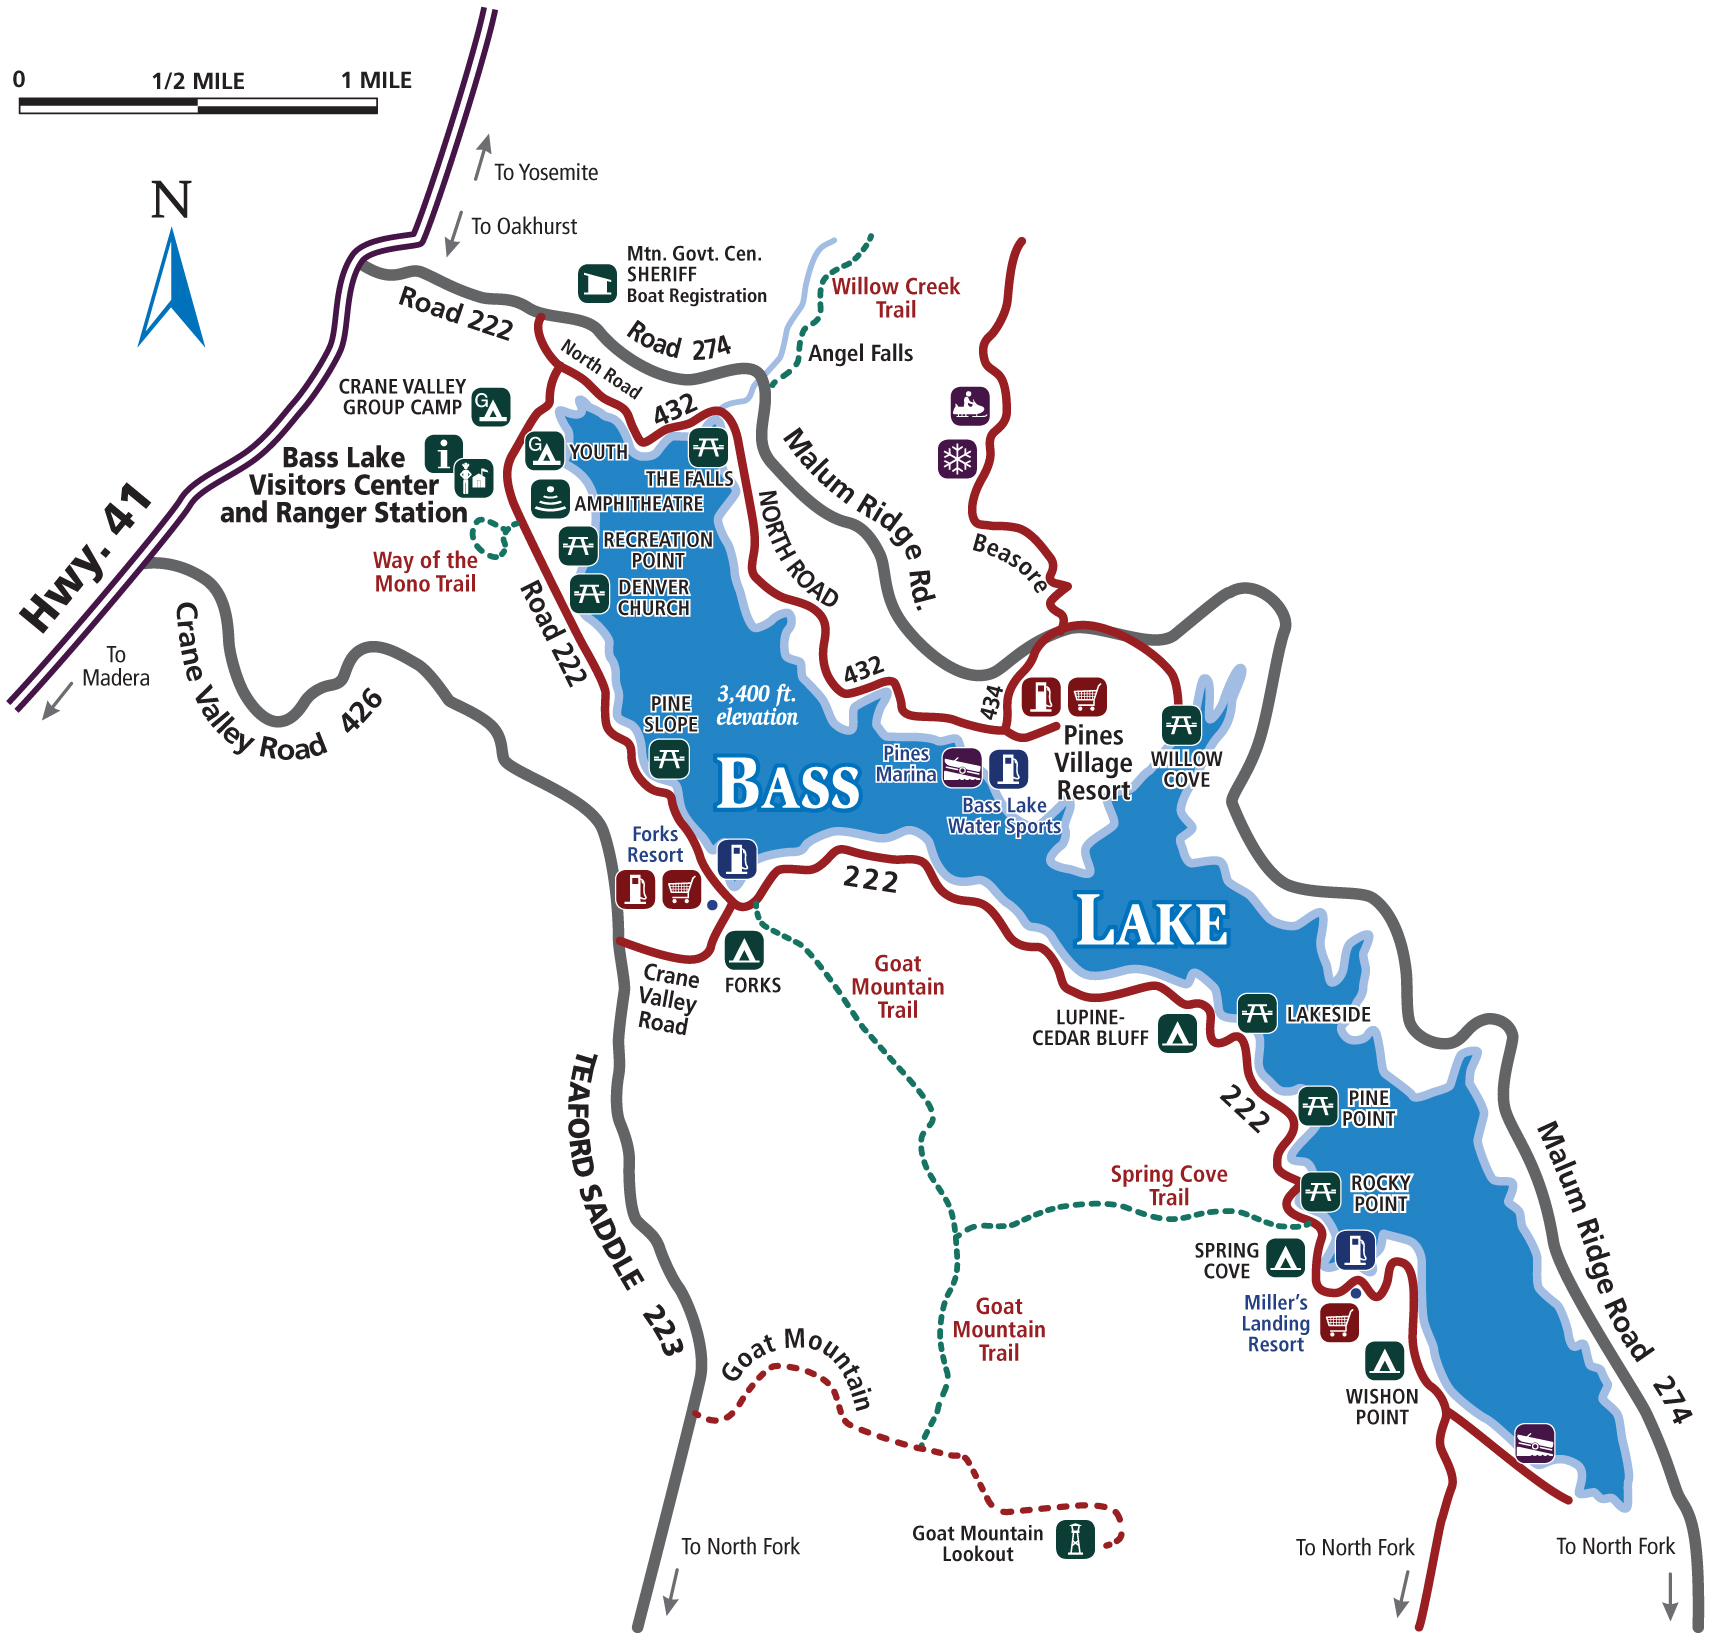 Highway 41 California Map.Madera County And Southern Yosemite Entrance Maps And Directions